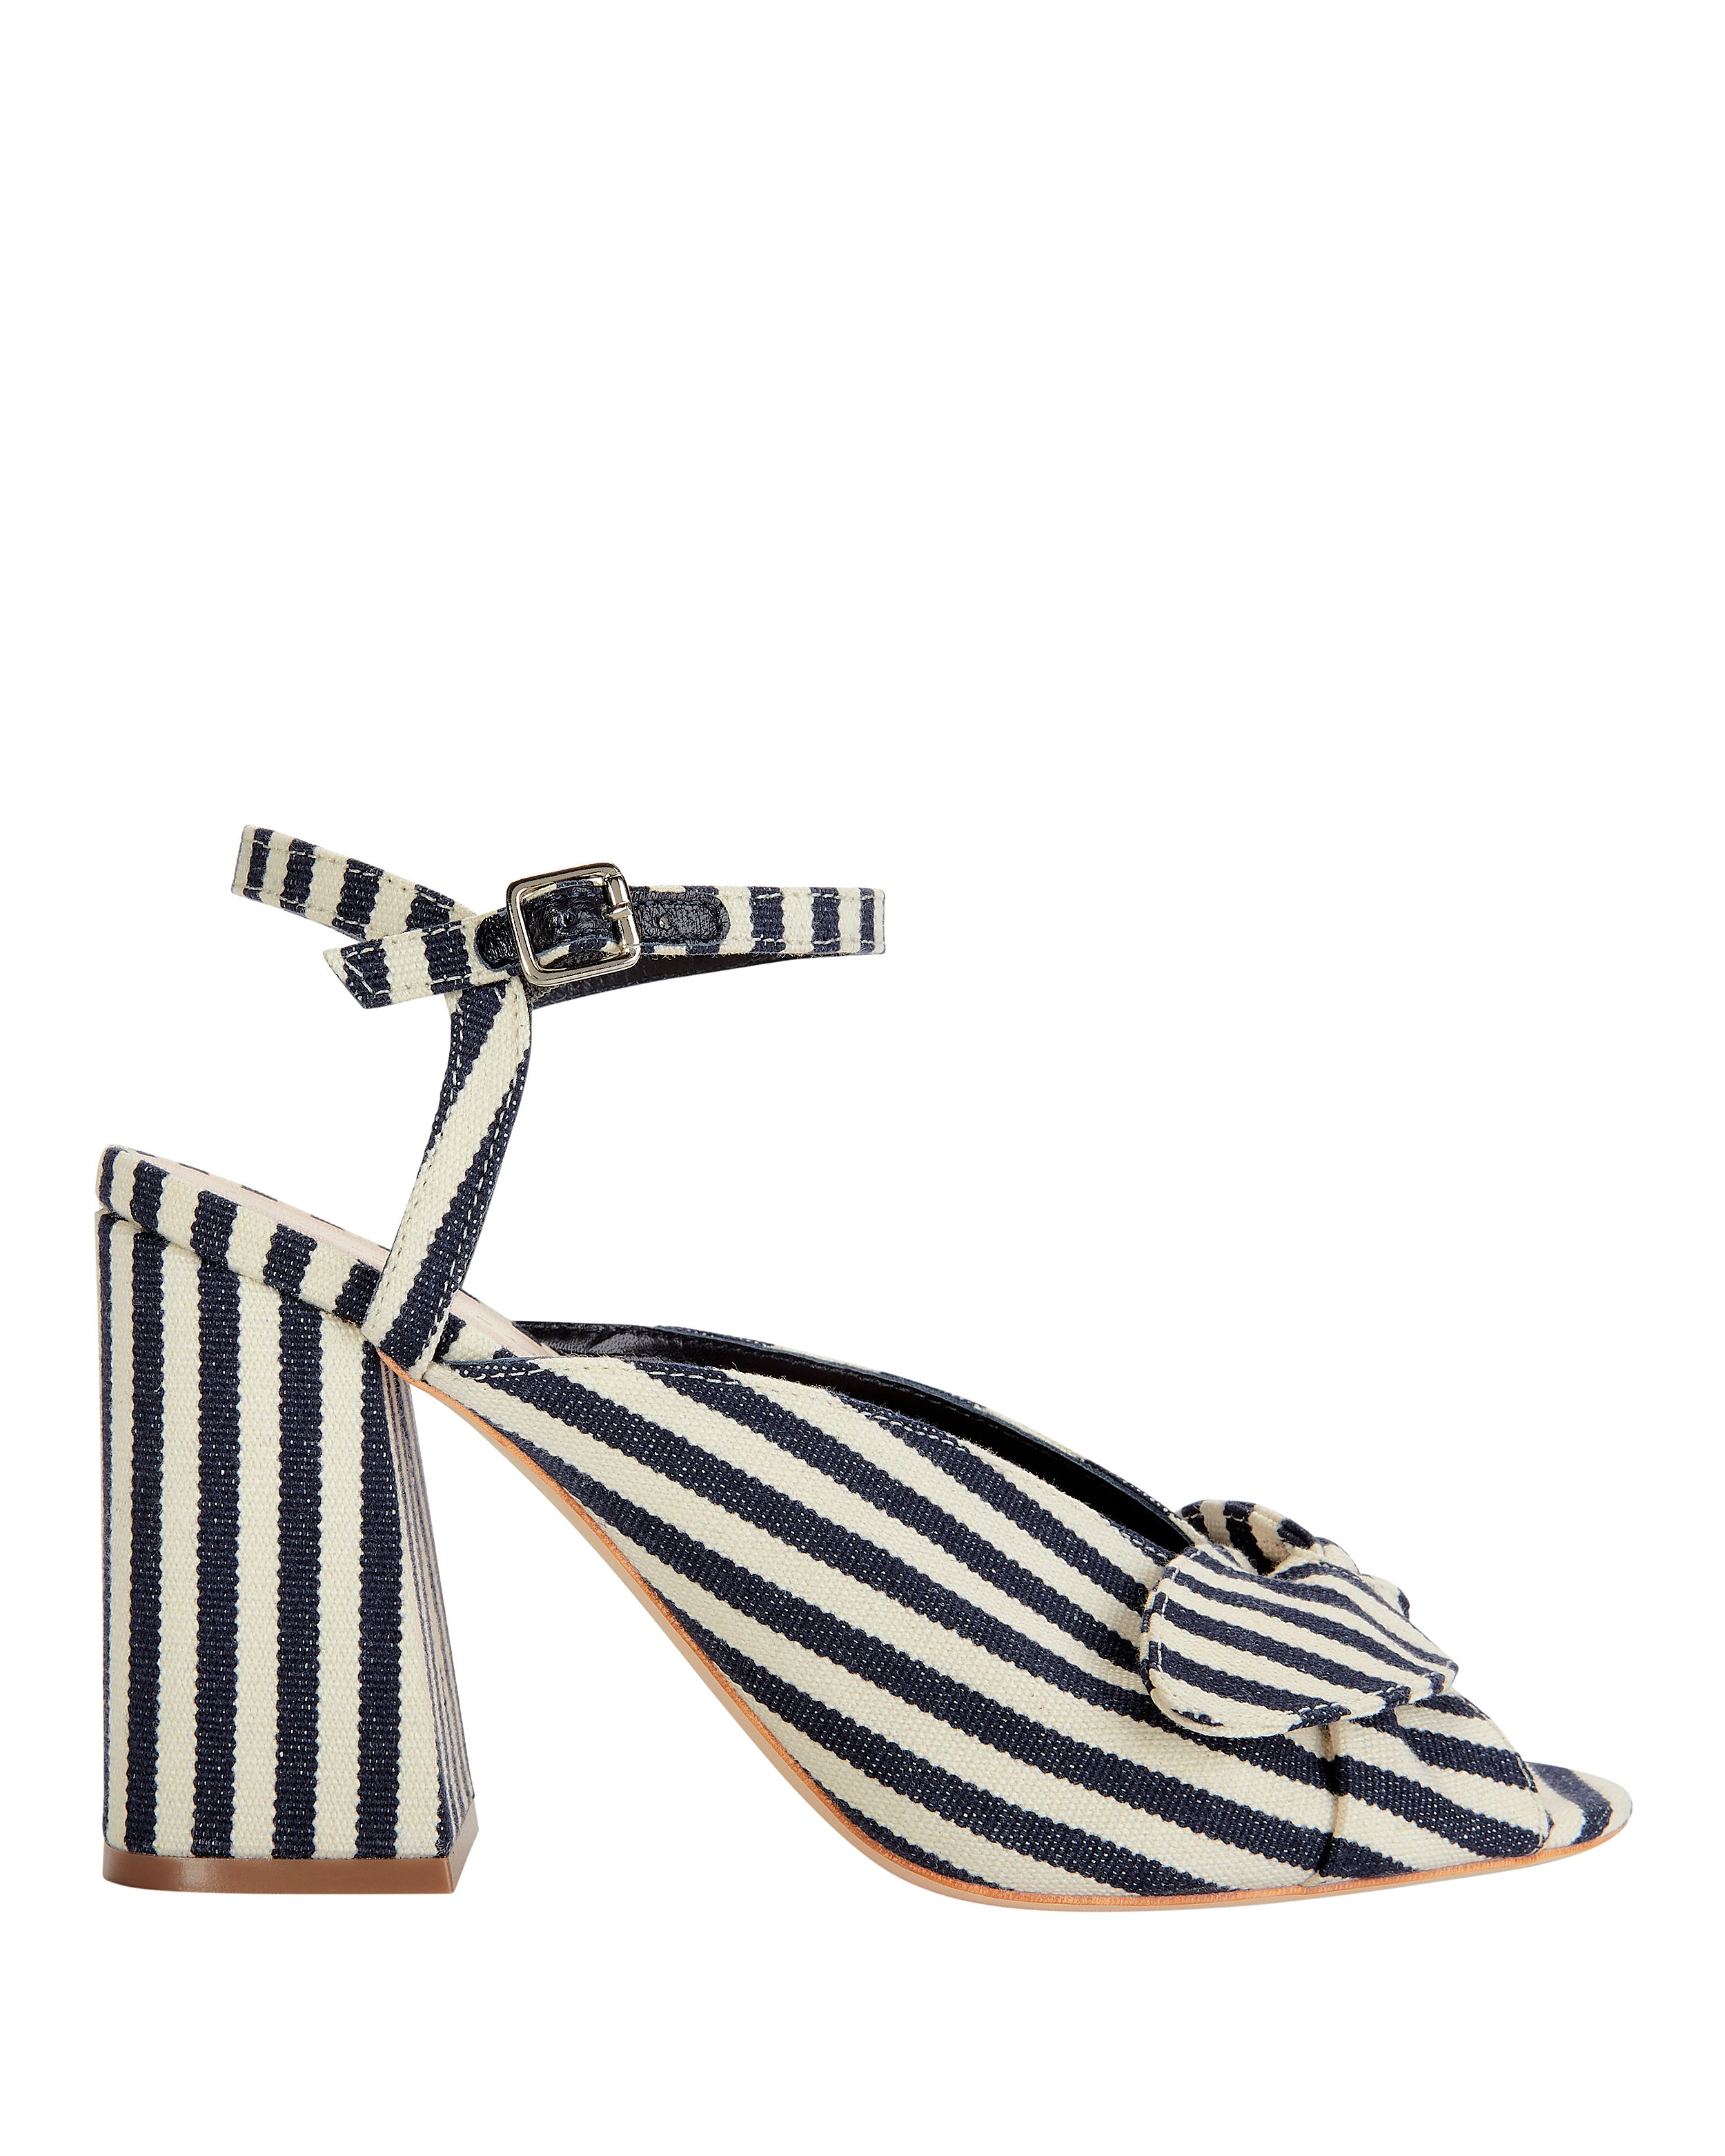 Leigh Bow Stripe Sandals by Loeffler Randall